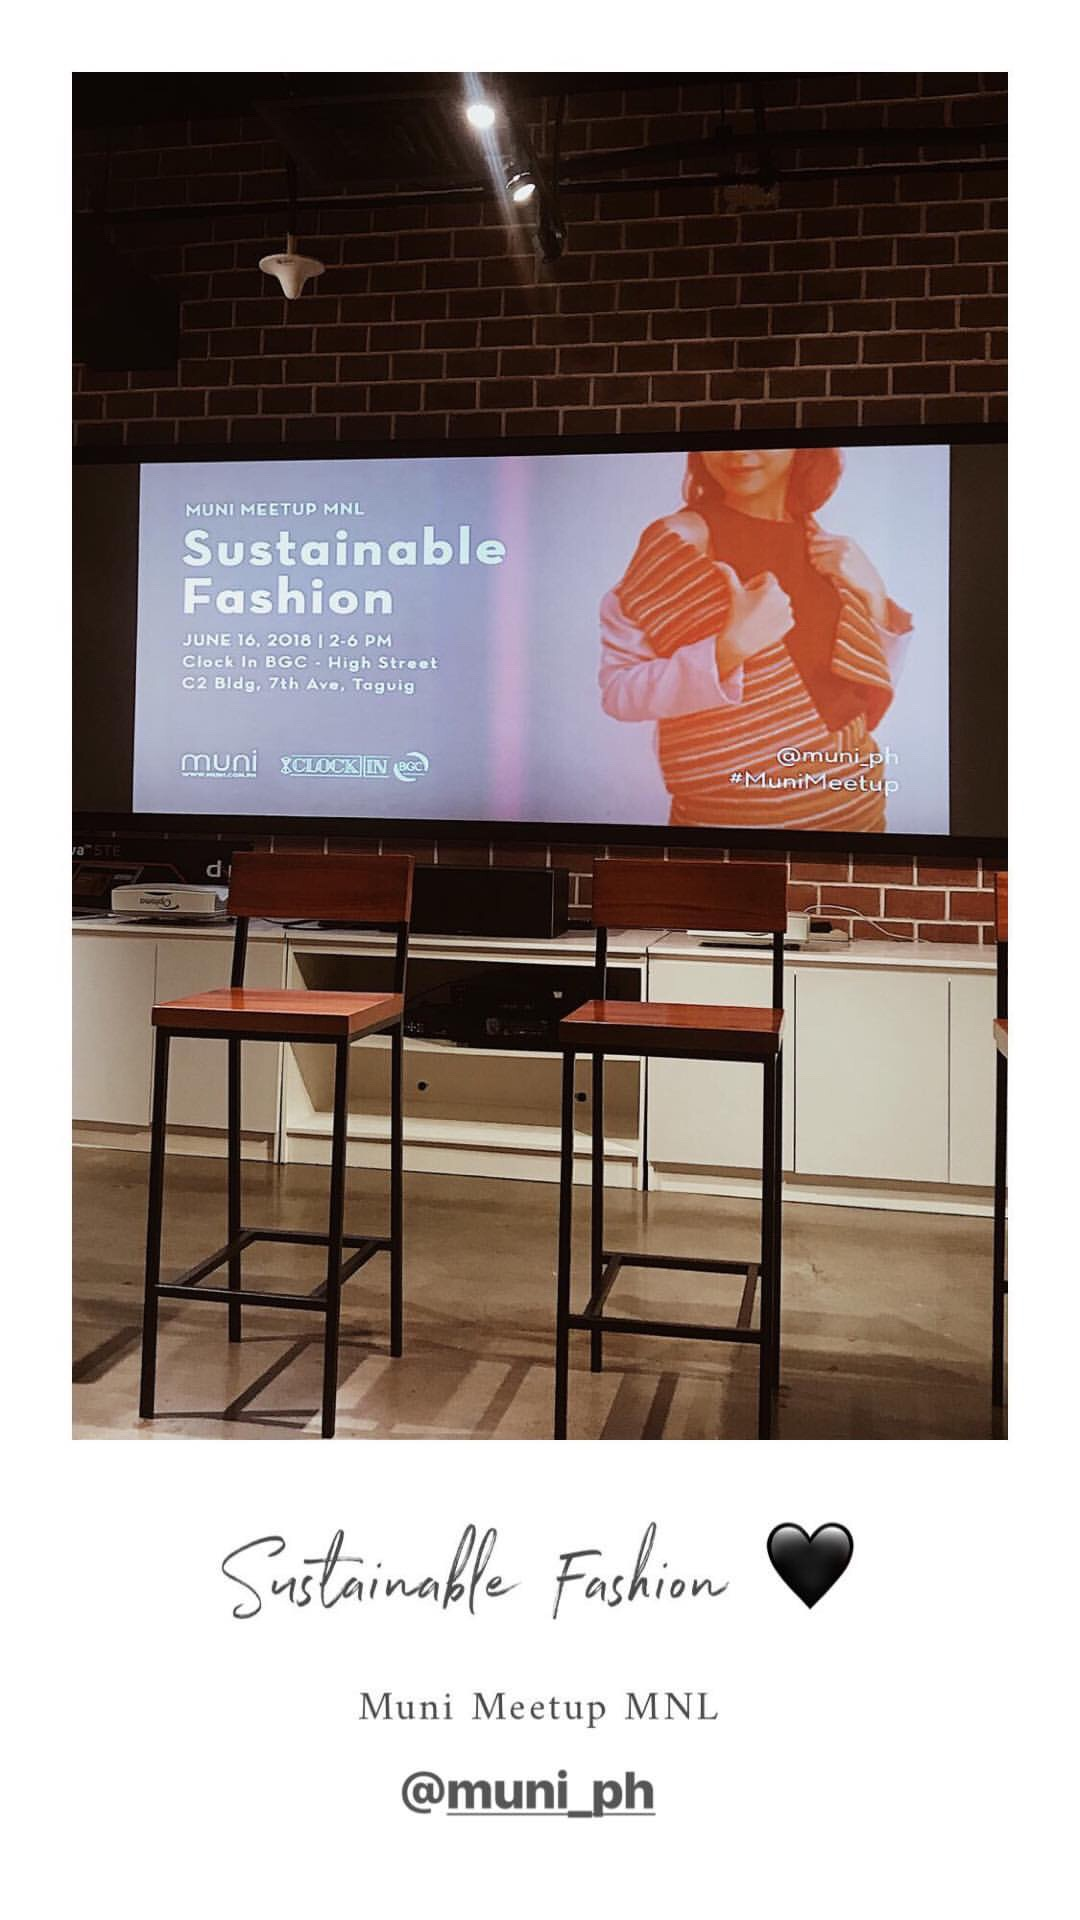 Events - Attended a talk about Sustainable Fashion with Muni Ph